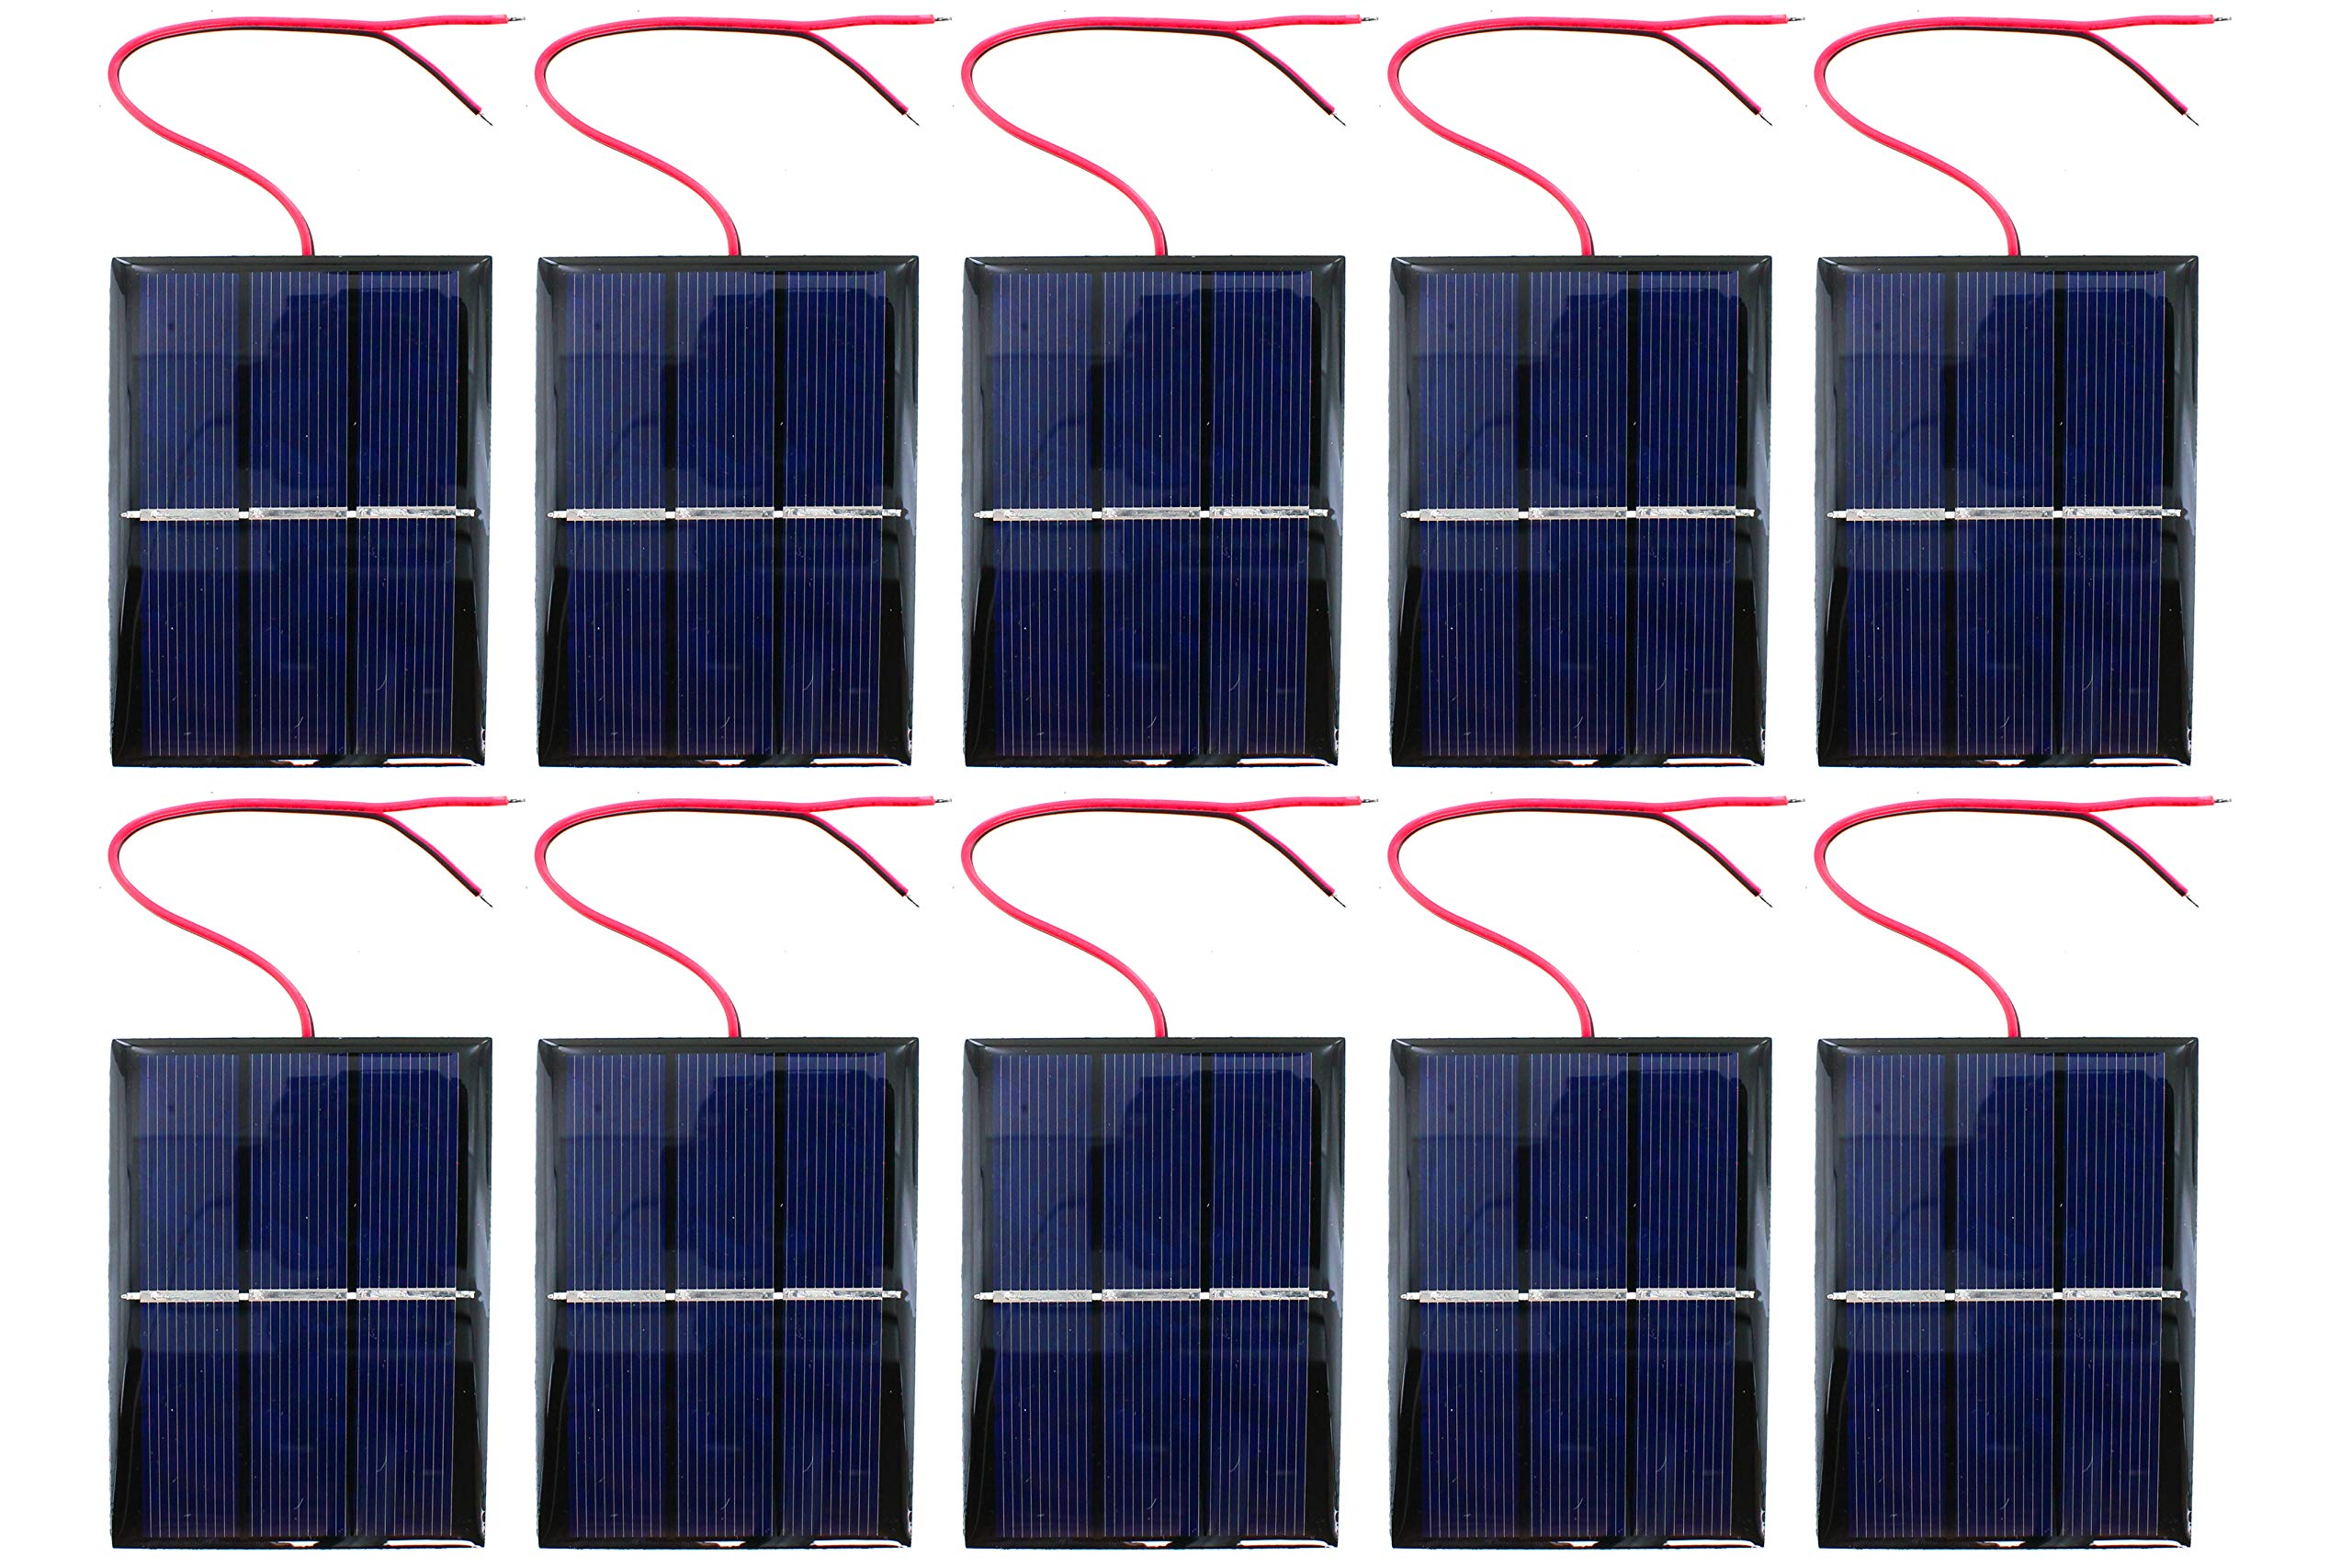 10 Pack xUmp Solar Cells - 1.5V 400mA 80x60mm - for Science, STEM, Hobby and Electronics Projects by xUmp.com